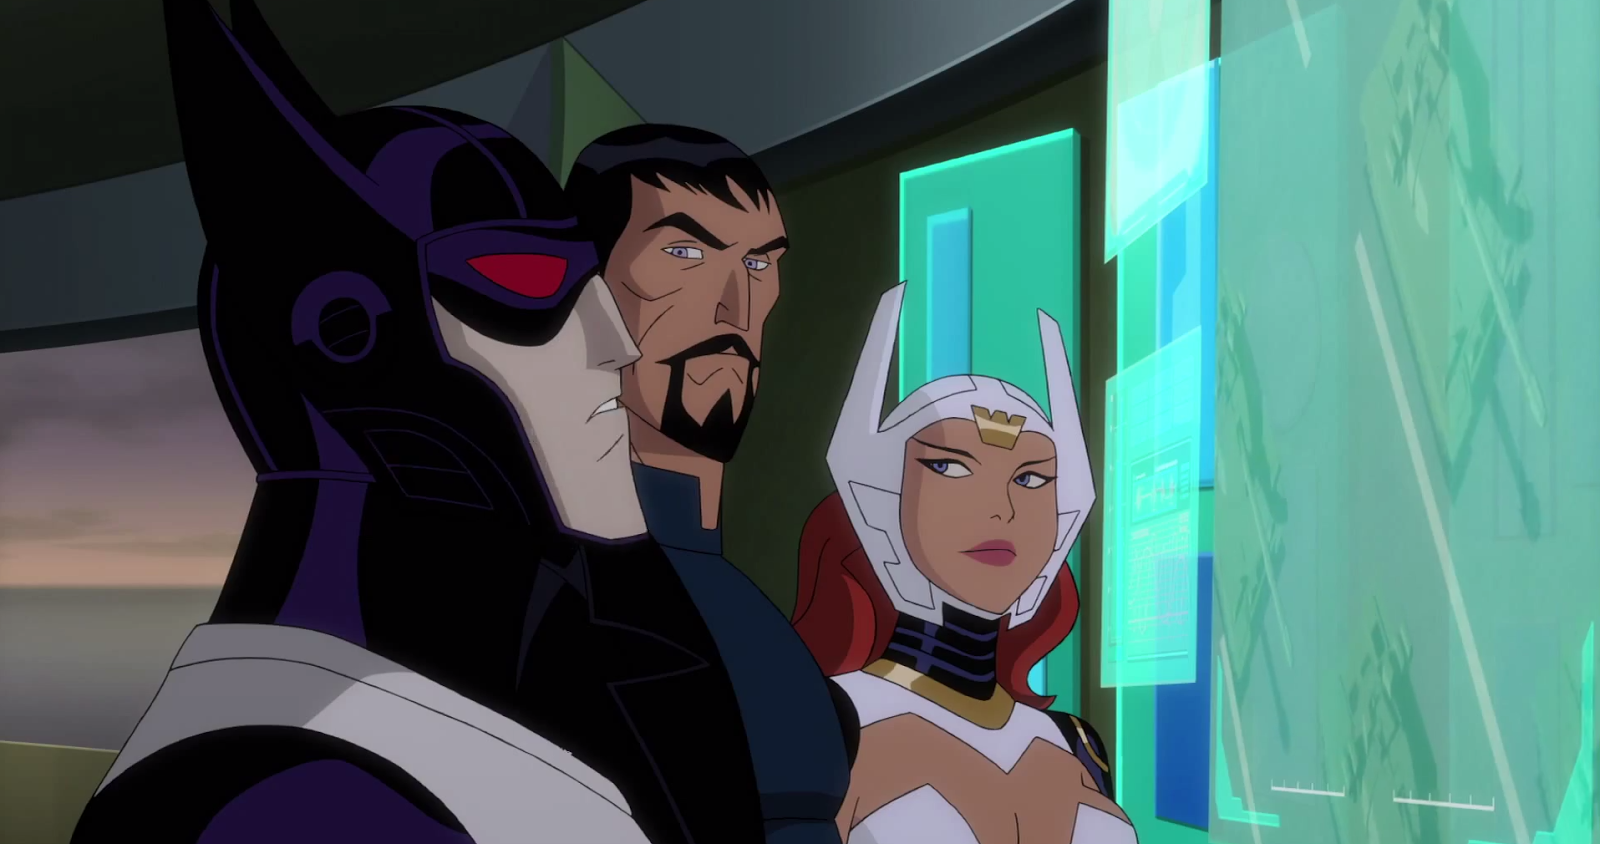 Looks Like This Will Be The Darkest Justice League Cartoon Ever